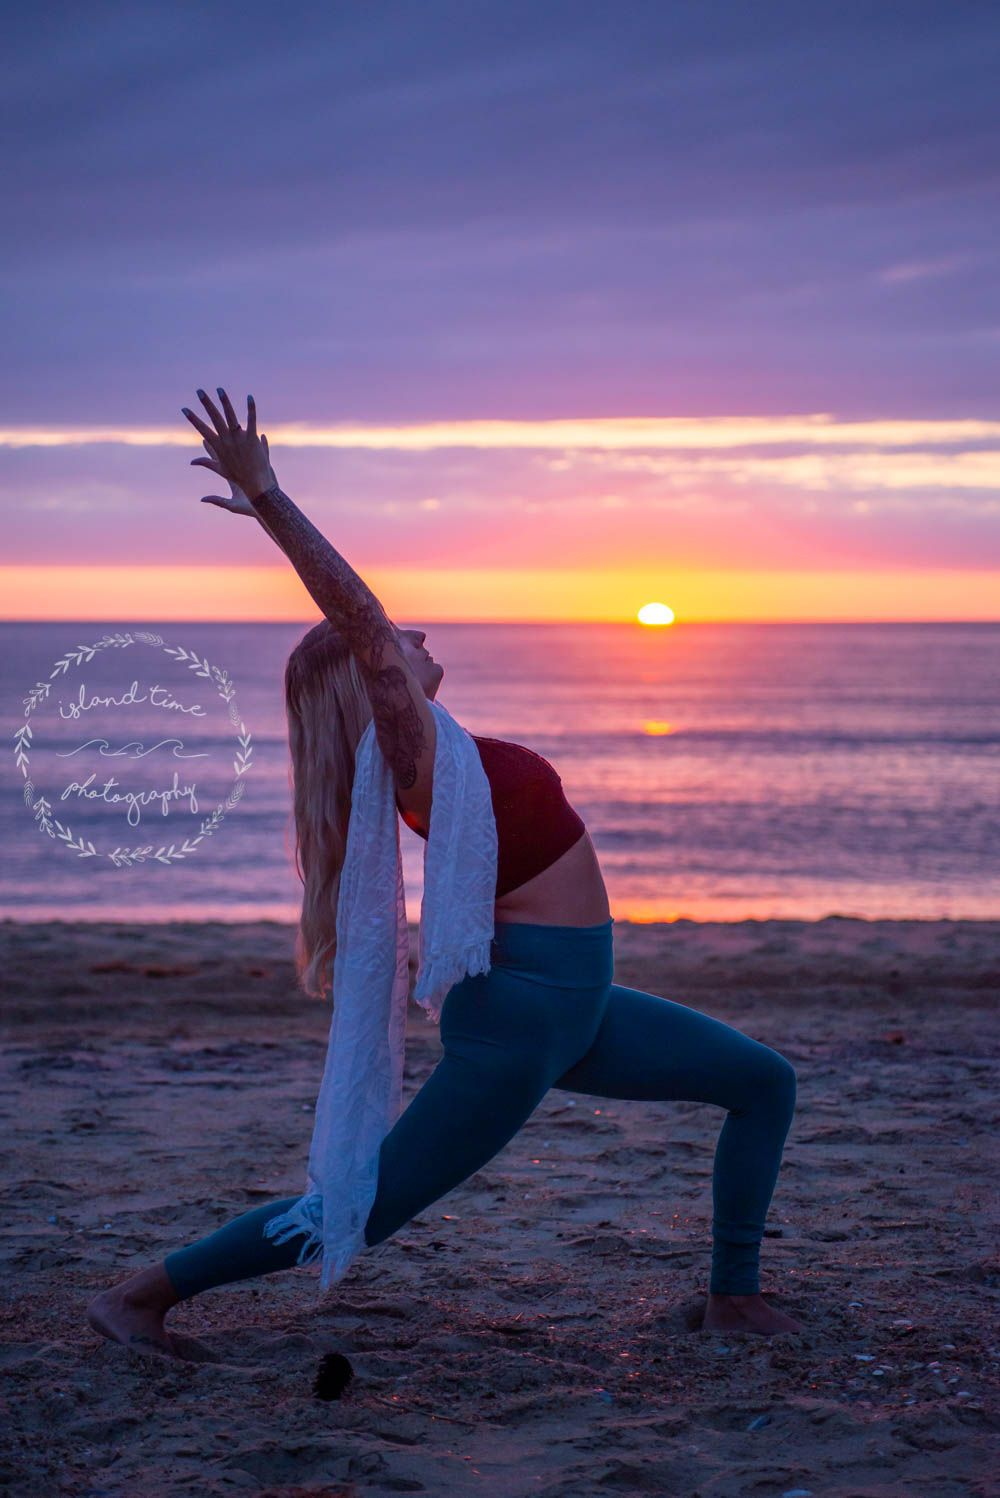 Sunrise Yoga Sessions On The Outer Banks In 2020 Sunrise Yoga Early Morning Yoga Time Photography